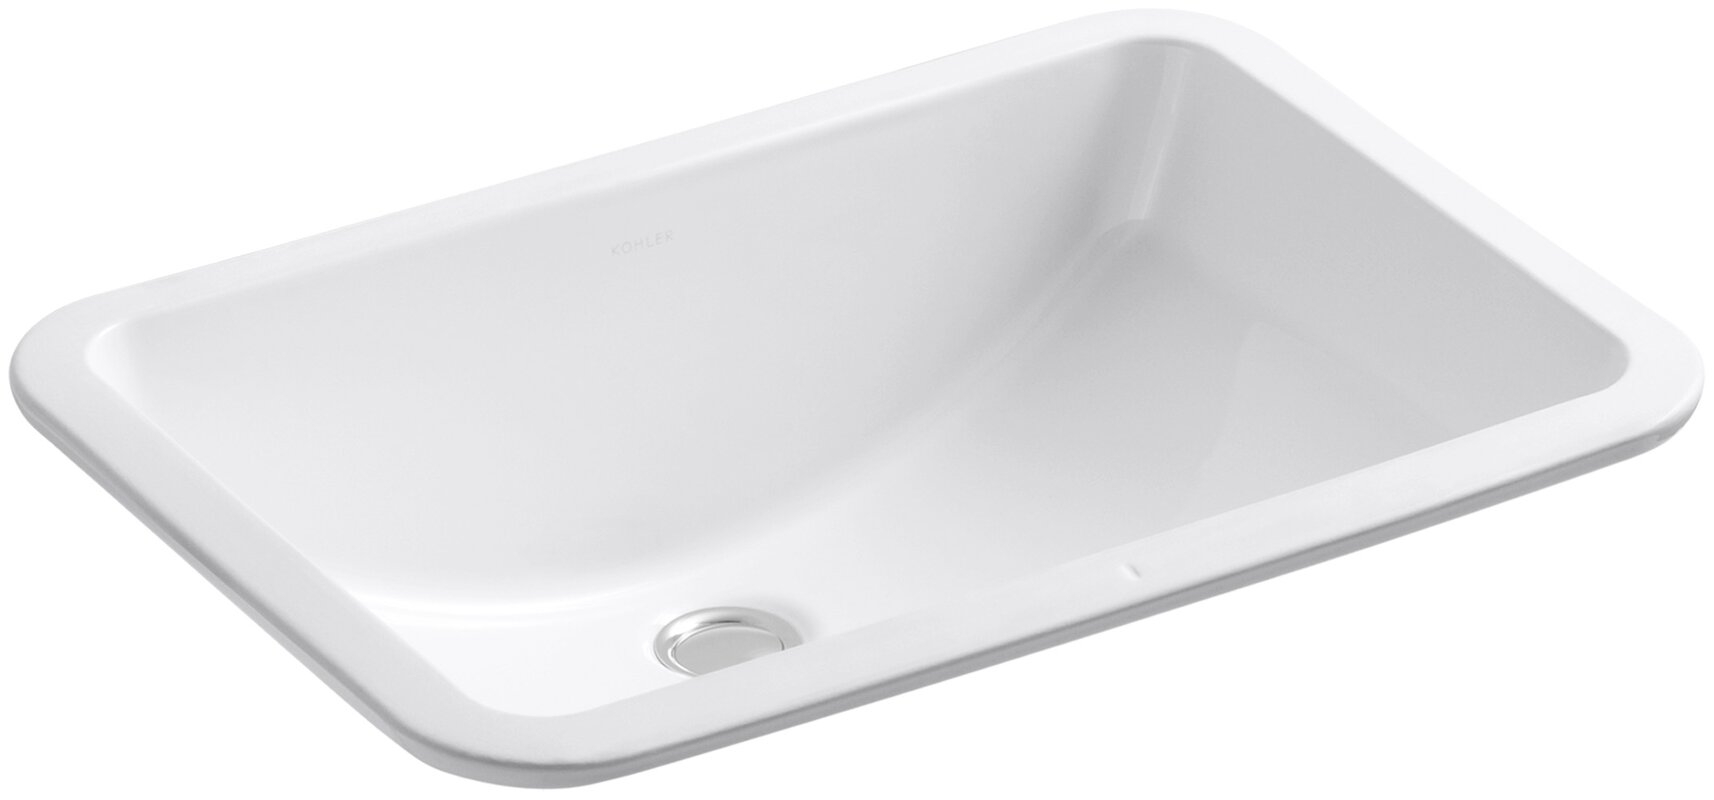 Ladena Ceramic Rectangular Undermount Bathroom Sink With Overflow